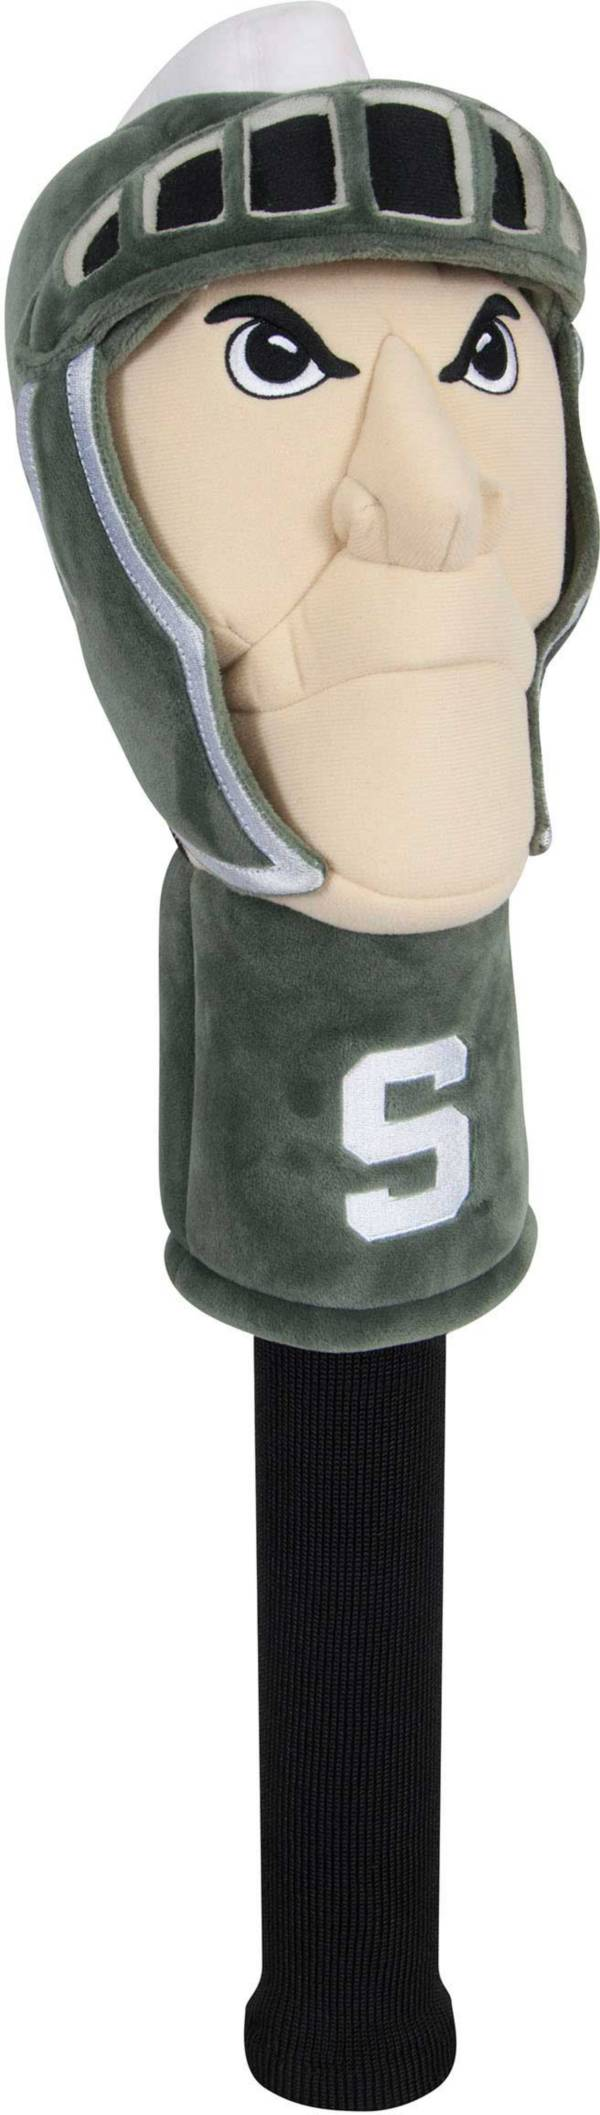 Team Effort Michigan State Spartans Mascot Headcover product image